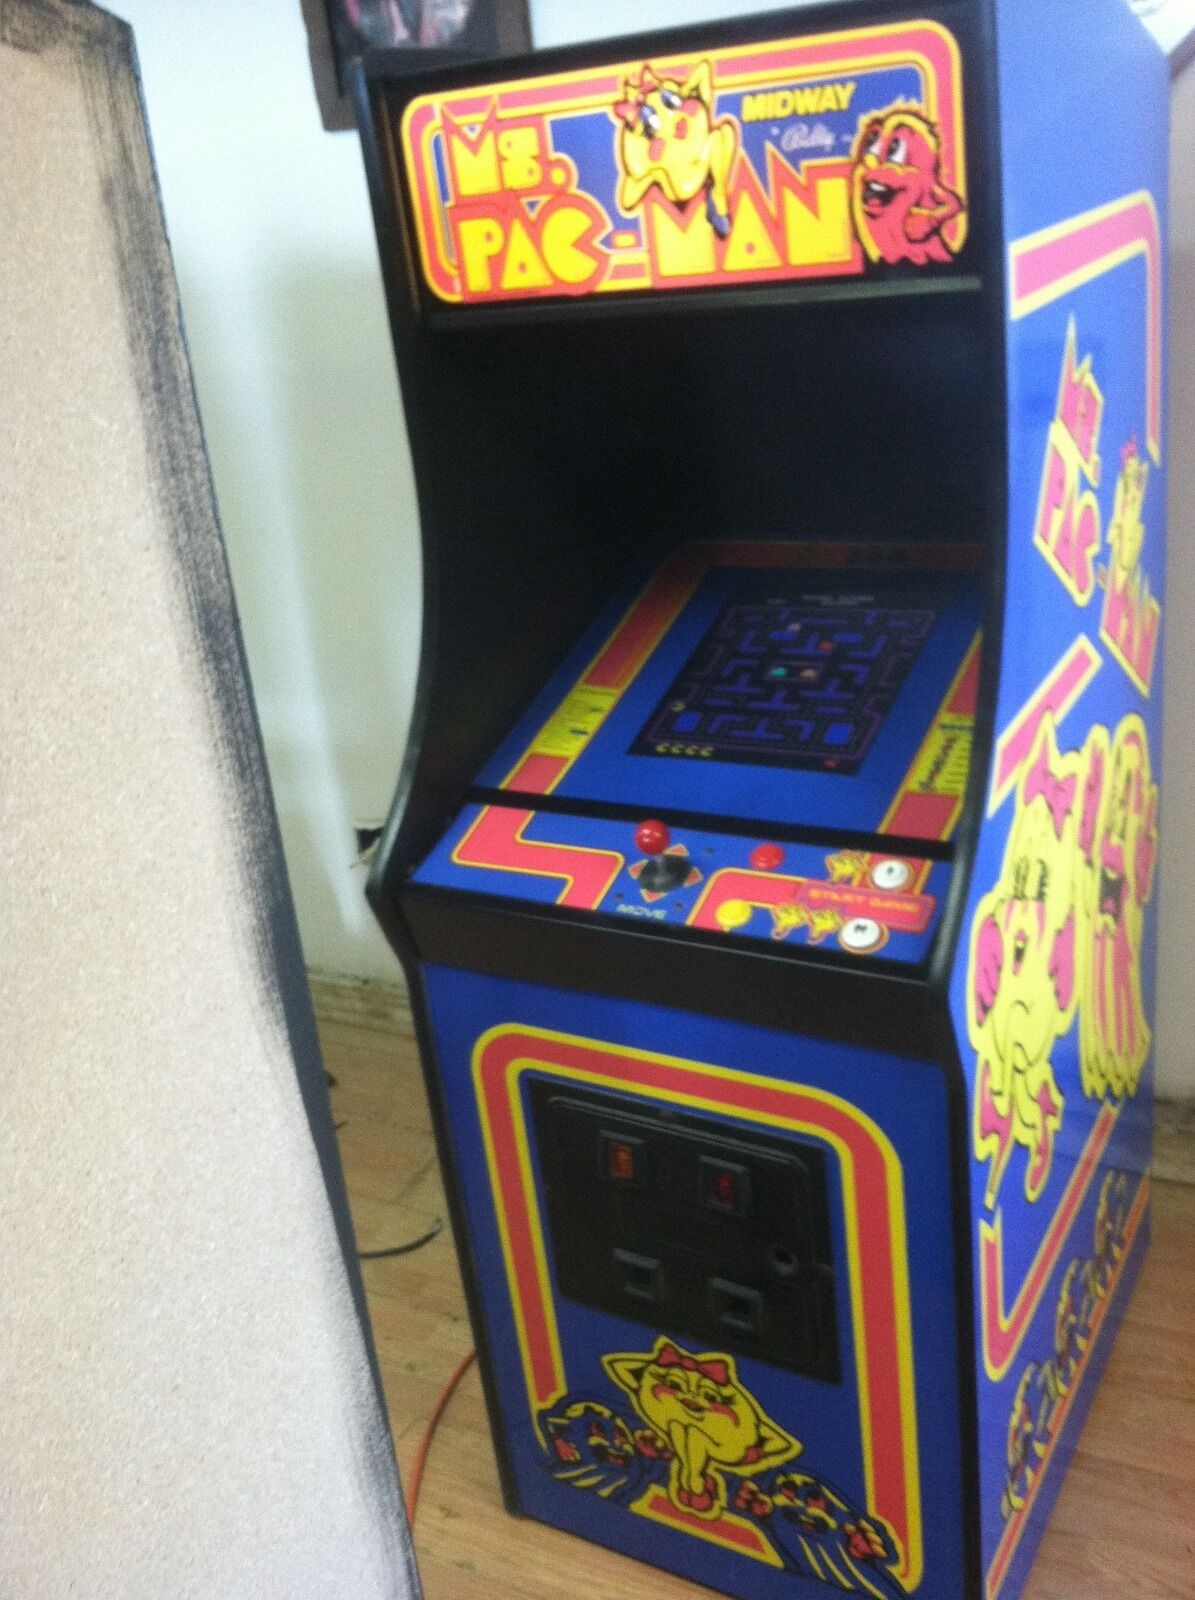 Wiring Money To Canada House Diagram Symbols Restored Ms Pacman Arcade Machine Upgraded From China